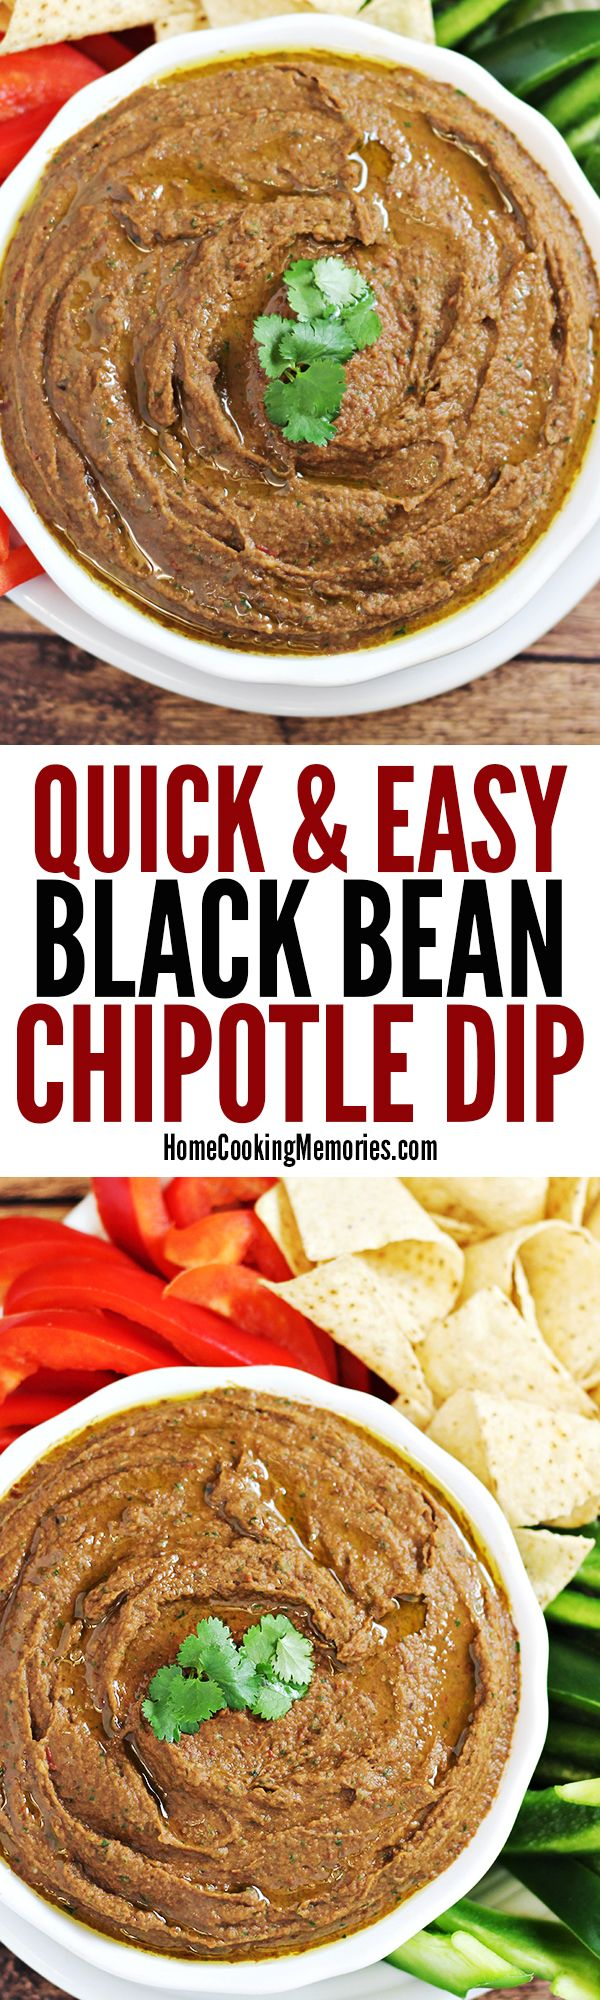 This Easy Black Bean Chipotle Dip recipe is a delicious & spicy party dip that you'll be able to make in 5 minutes or less. You only need 7 ingredients for this healthy dip: black beans, canned chipotle peppers, cilantro, lime juice, garlic, olive oil and salt. Gluten free & vegan too!